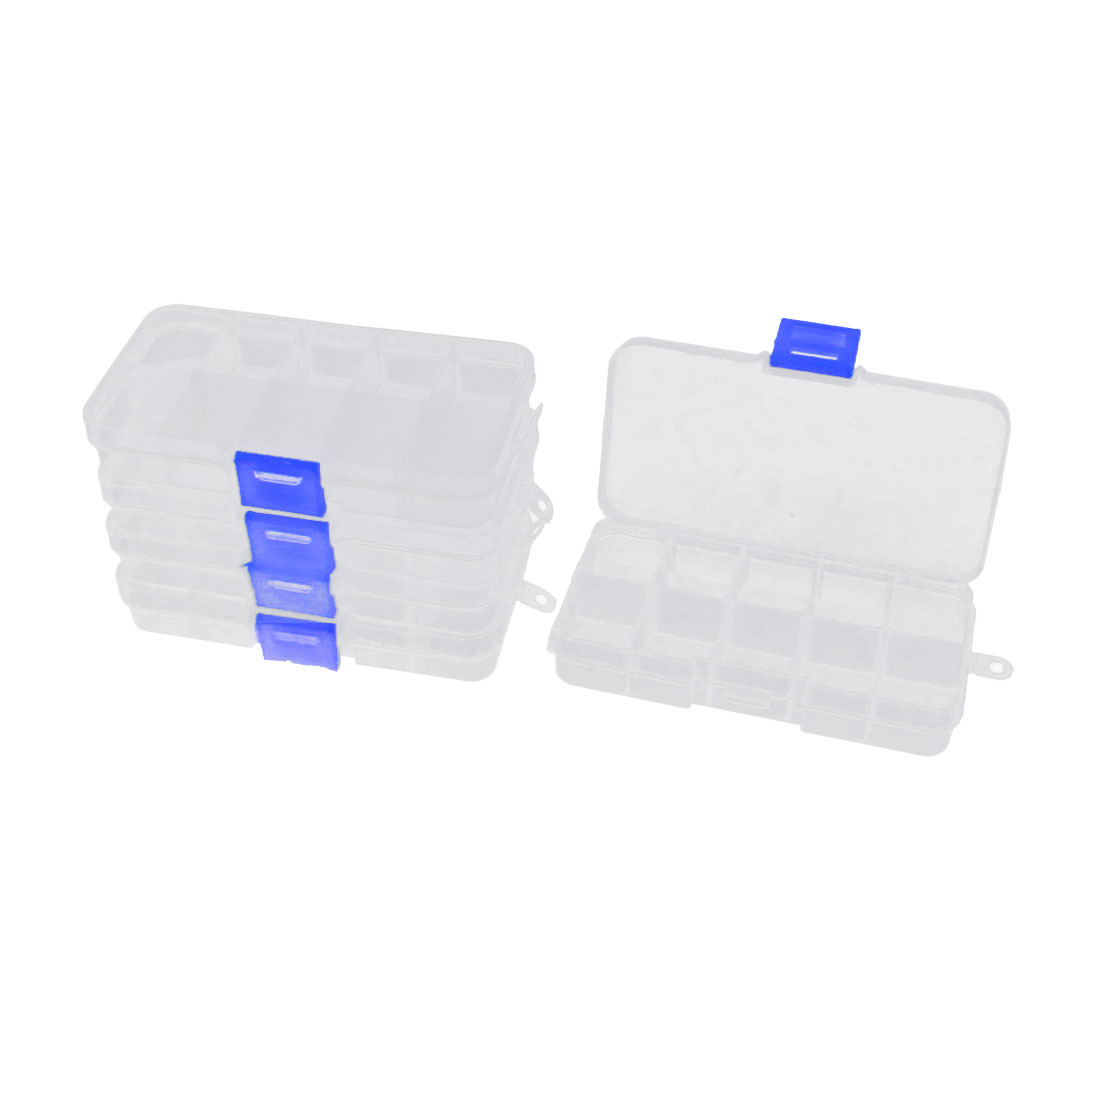 5pcs Clear White Plastic Rectangle 10 Compartments Electronic Components Storage Holder Box Case